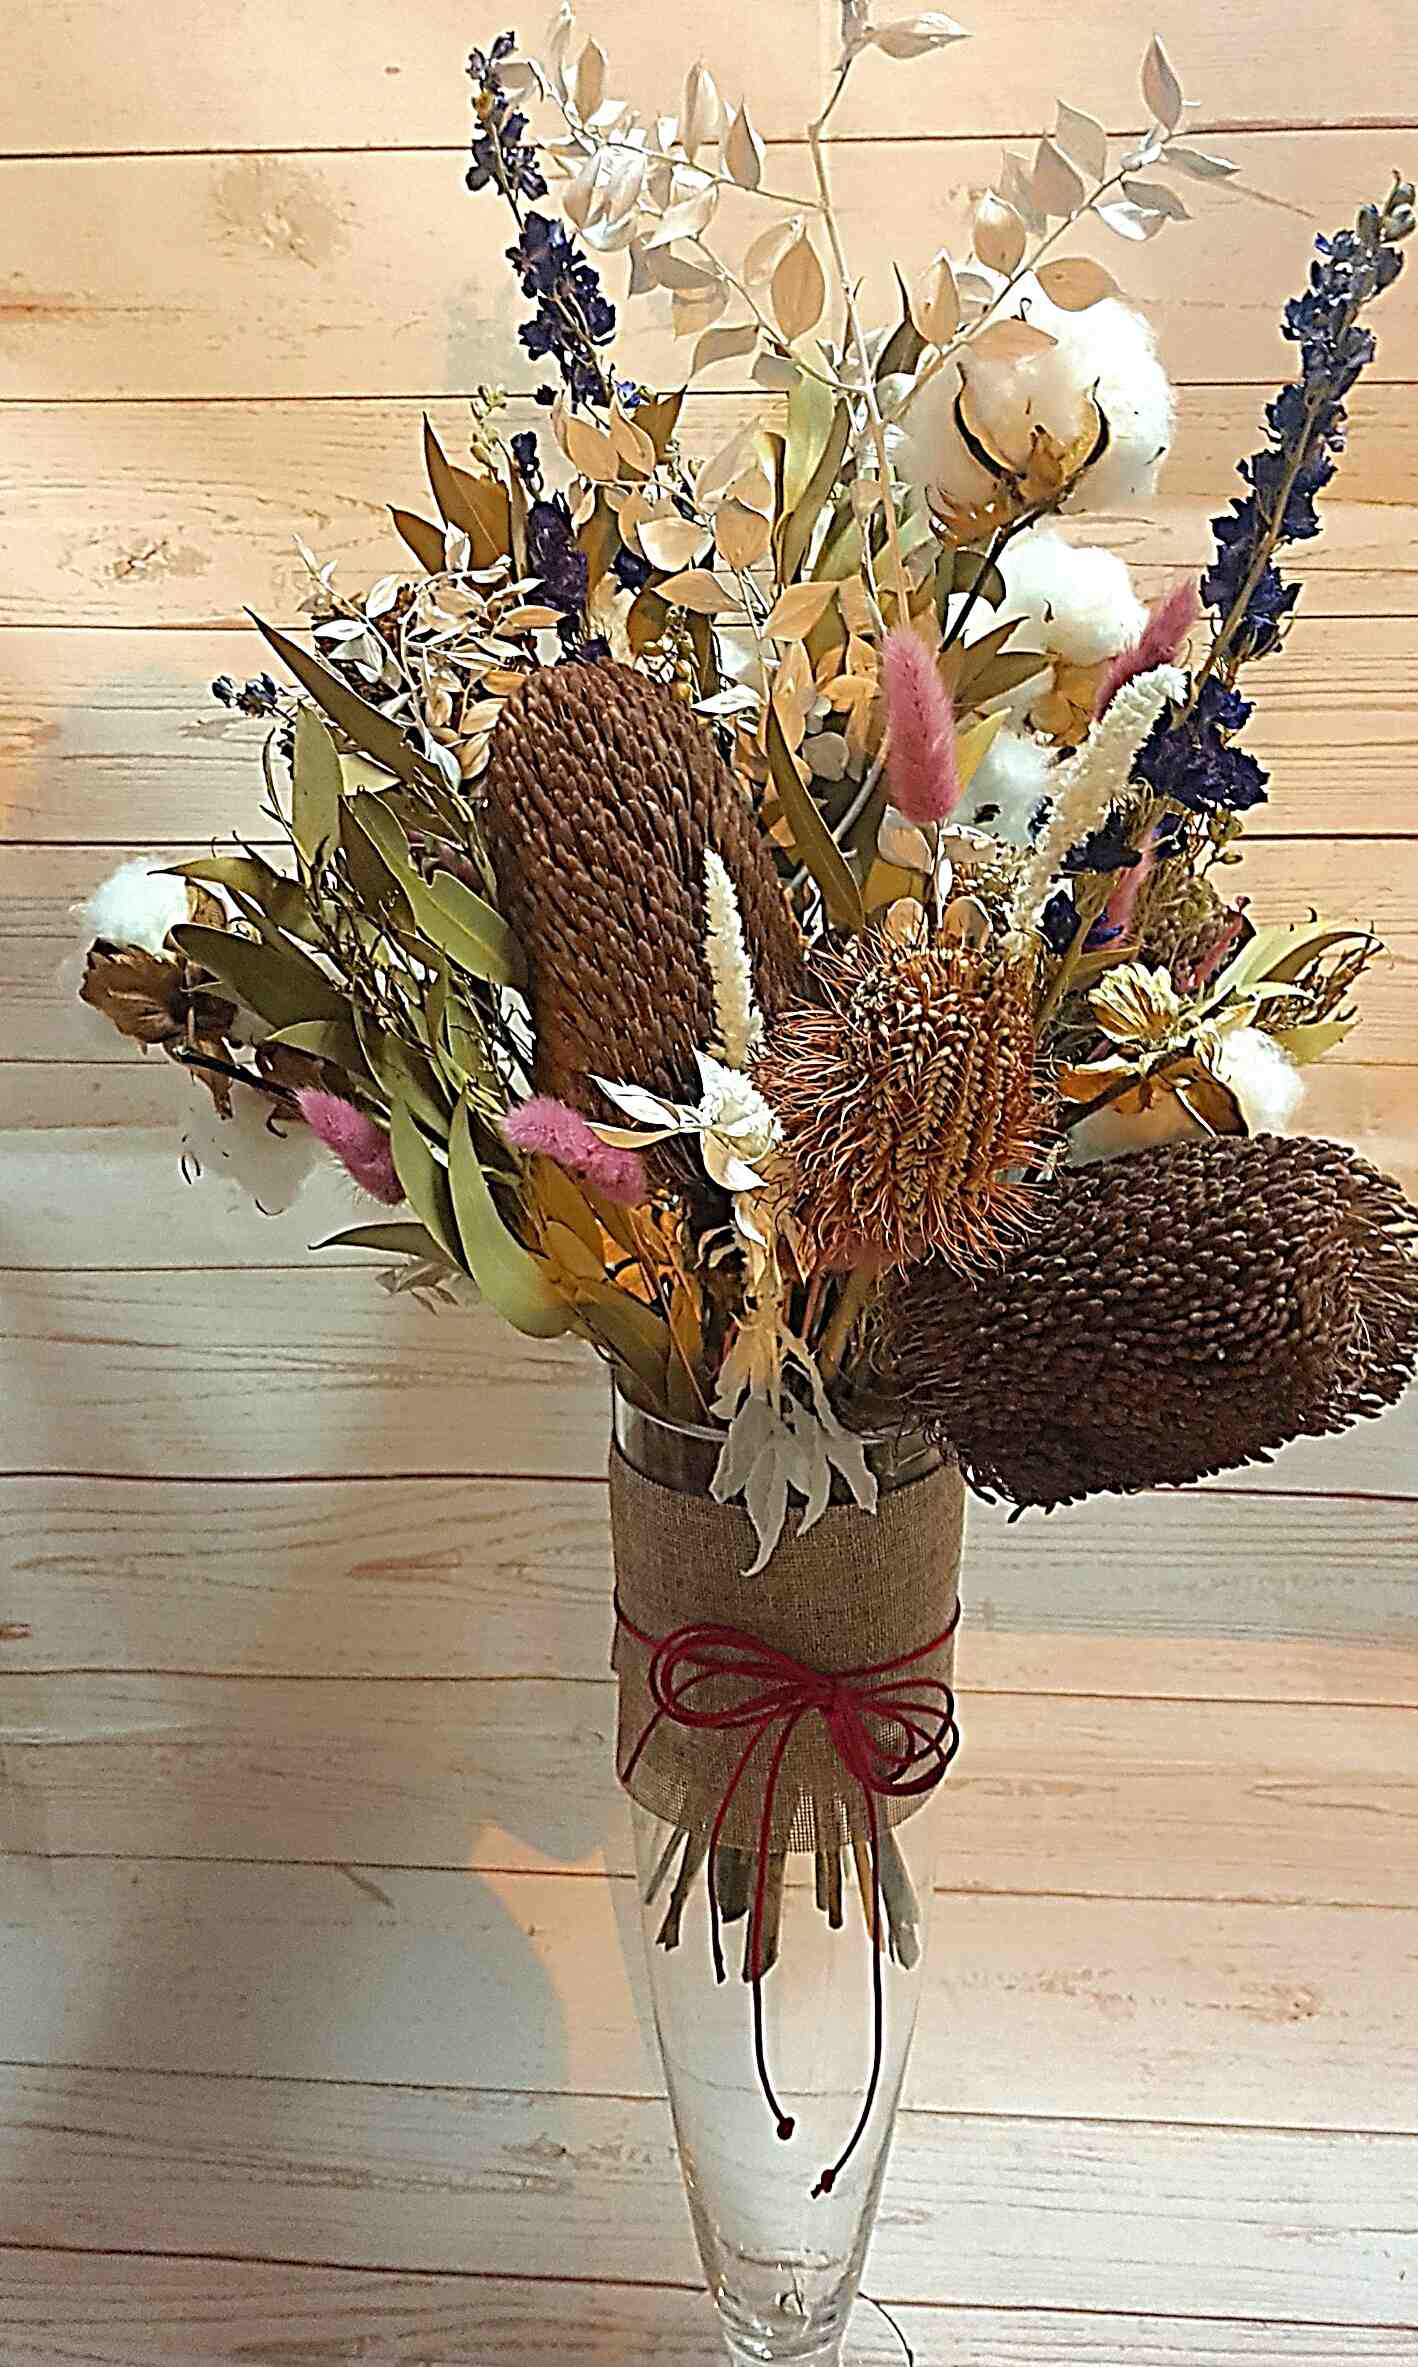 Lily a stunning dried and preserved bouquet presented in a beautiful glass vase. Natural tones with splashes of blue delphinium and blush bunny tails, and who doesn't love cotton, a featured item in this arrangement.